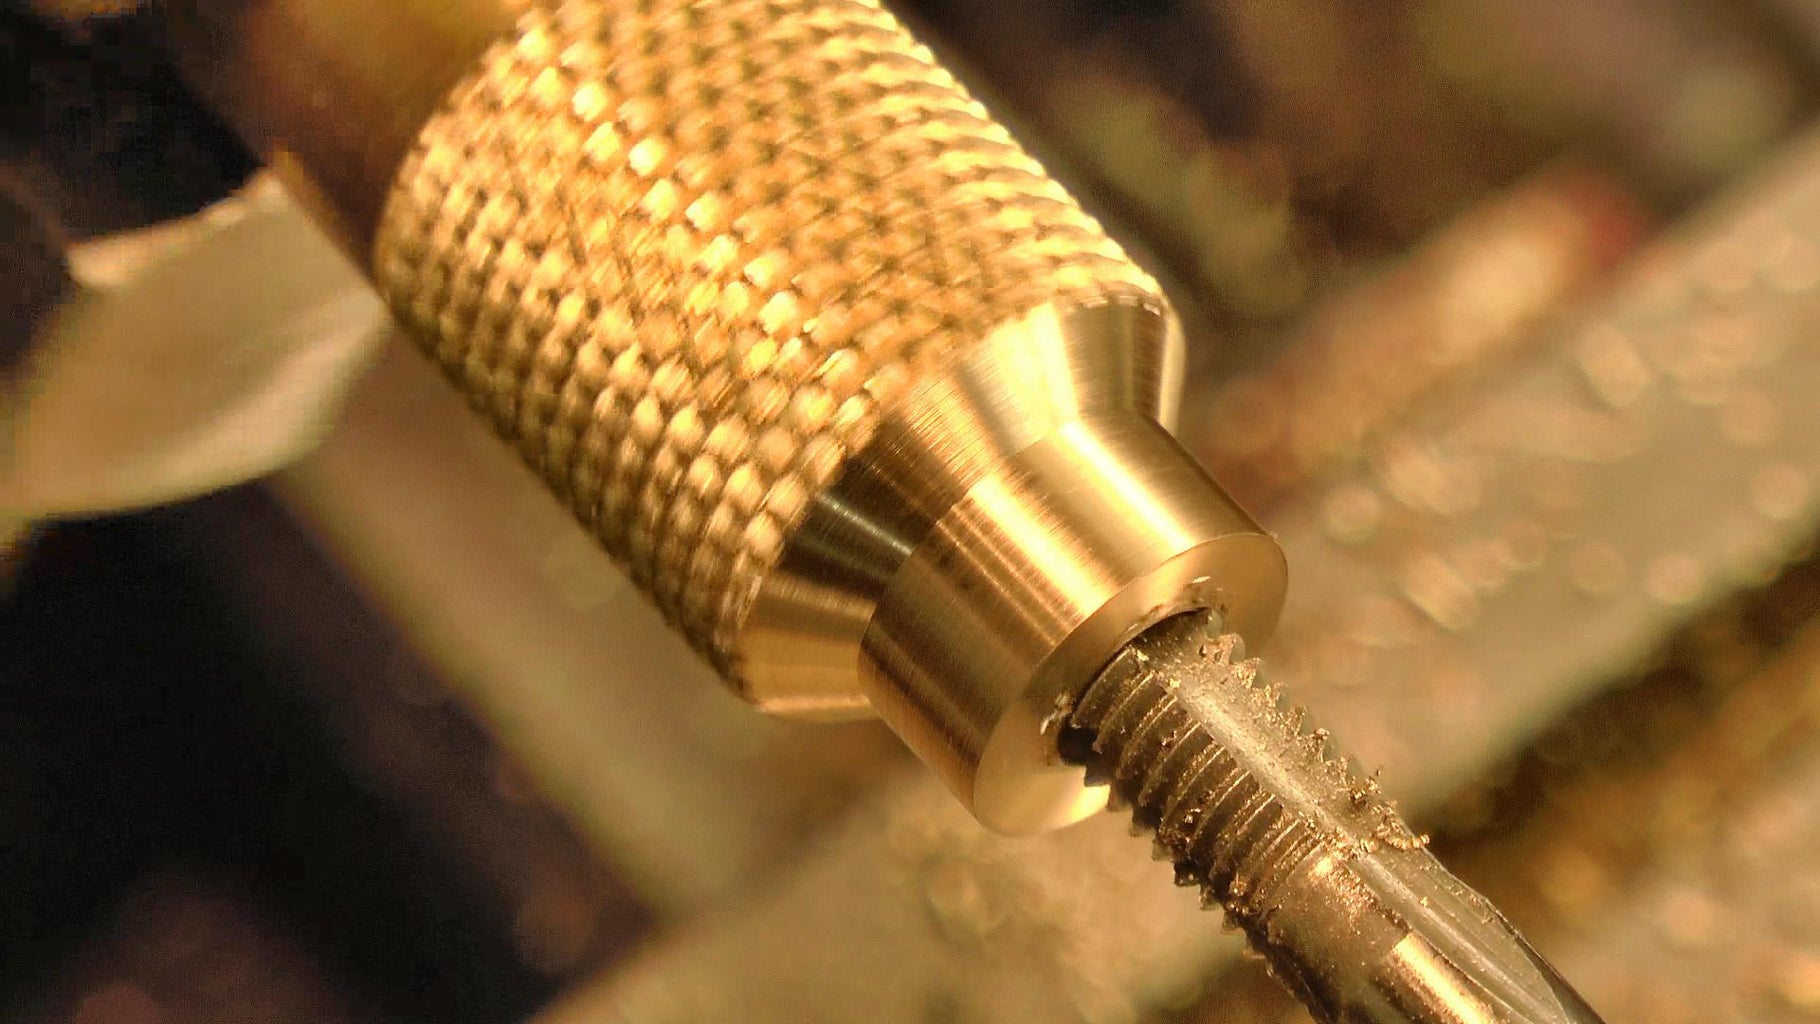 The Clamping Nut